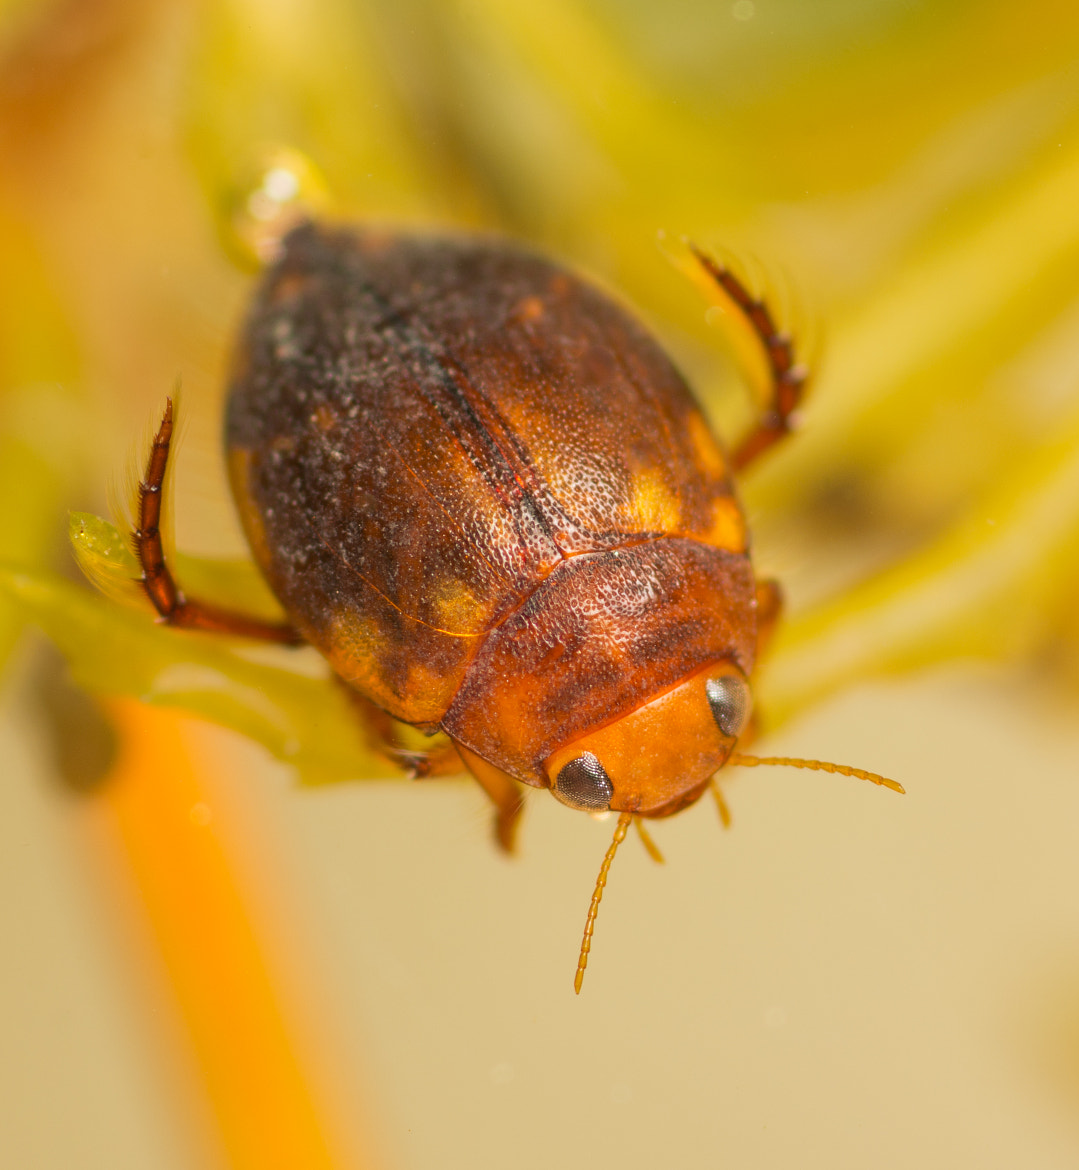 Photograph hyphydrus ovatus diving beetle by Neil Phillips on 500px